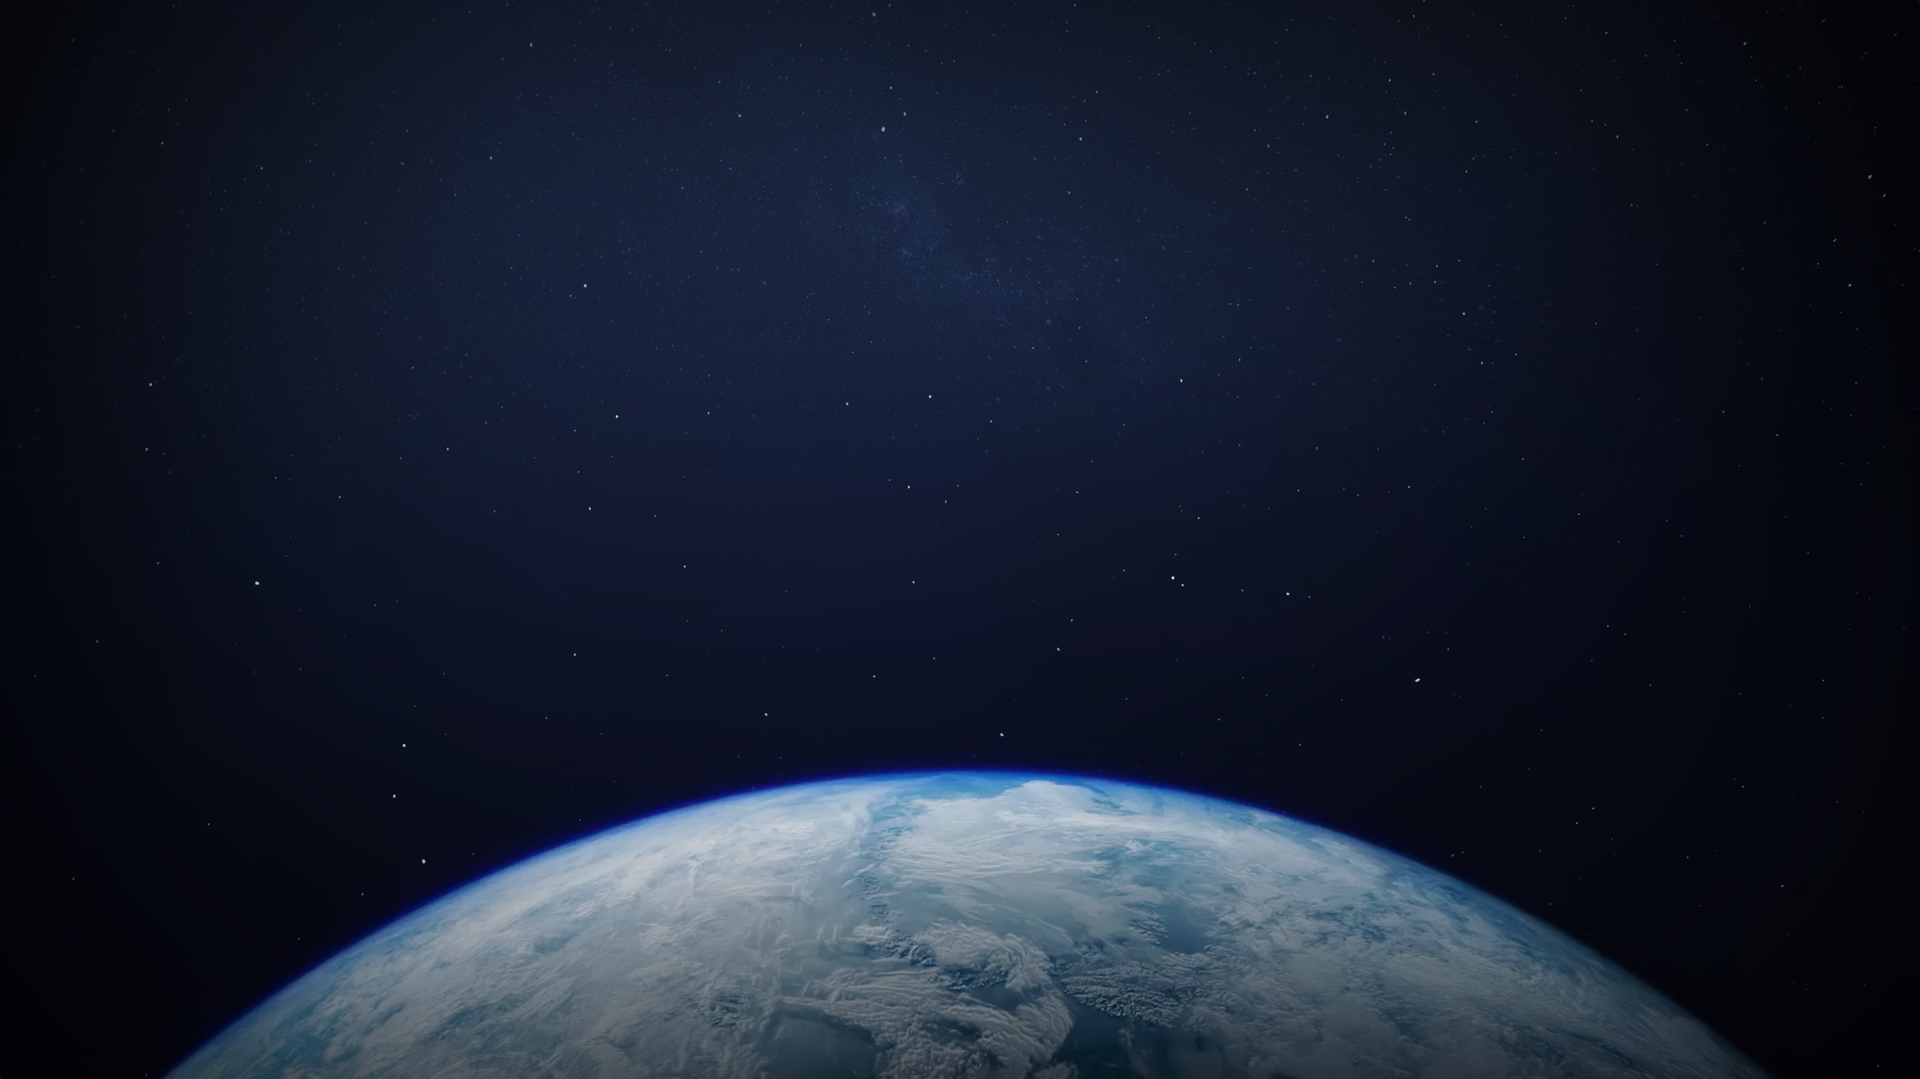 planet background image